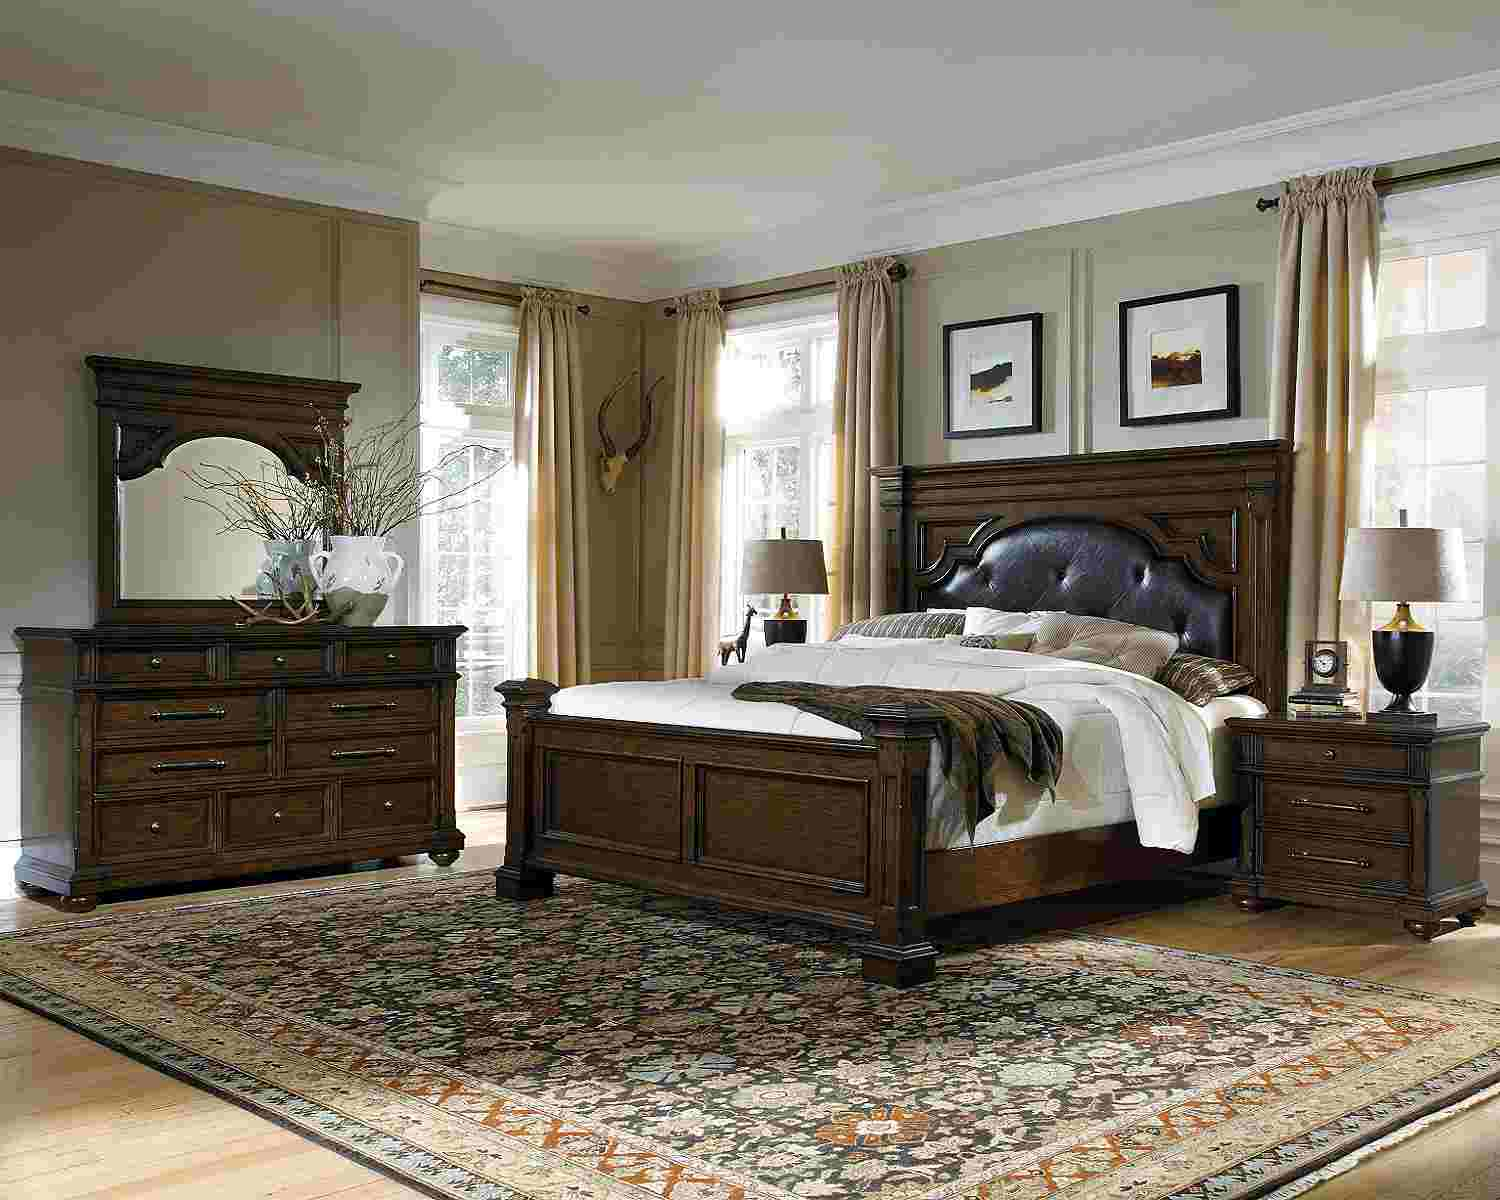 Pulaski Furniture - Beds, Headboards & More  Sears.com